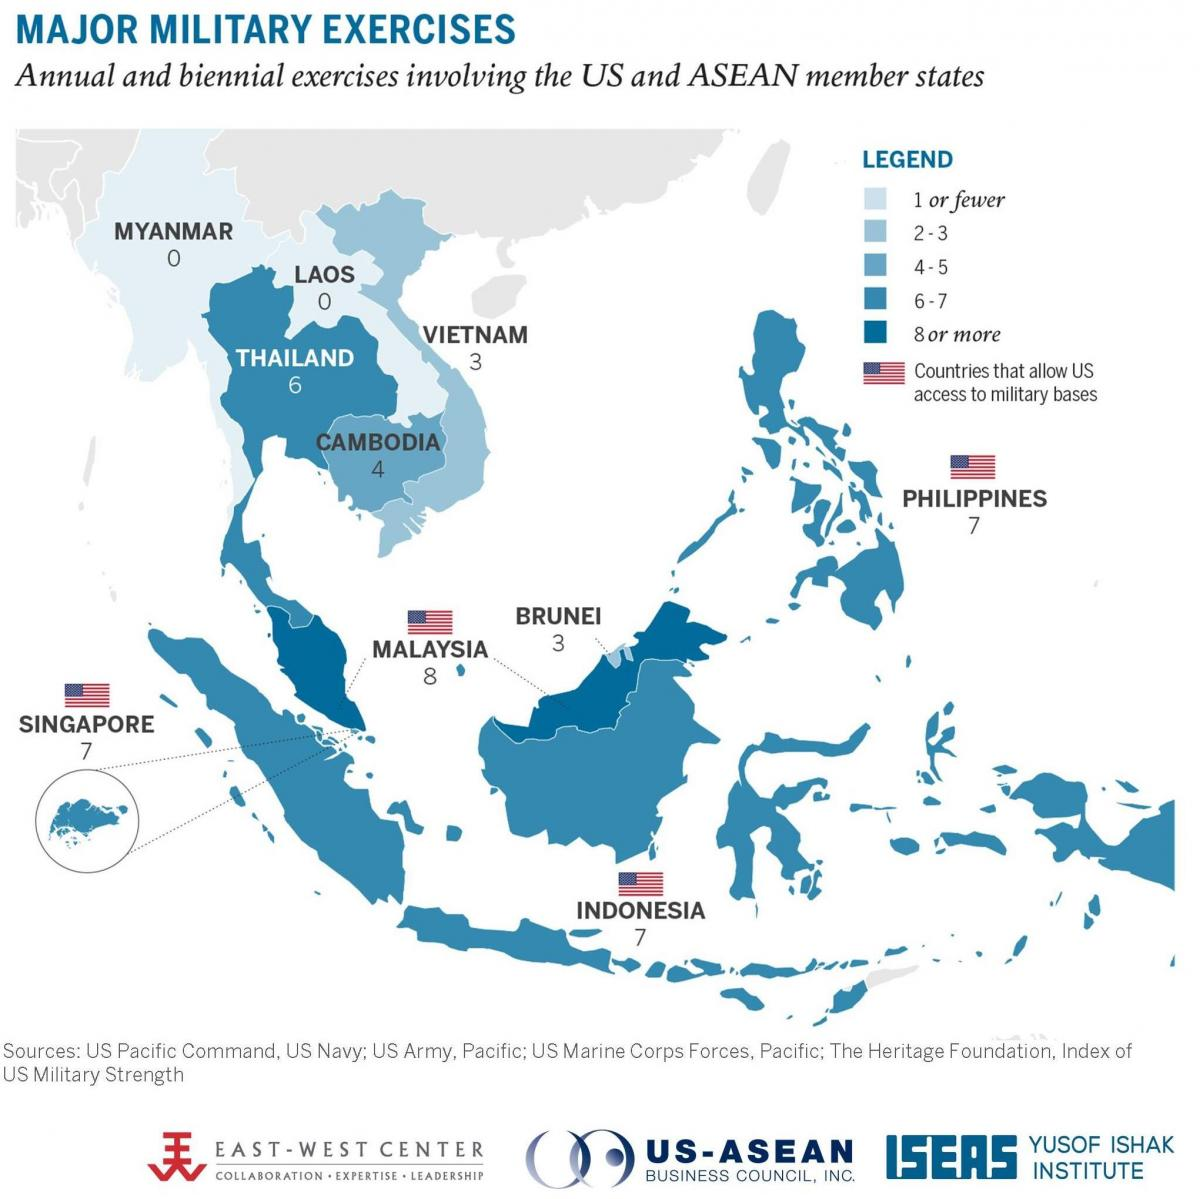 Major Military Exercises